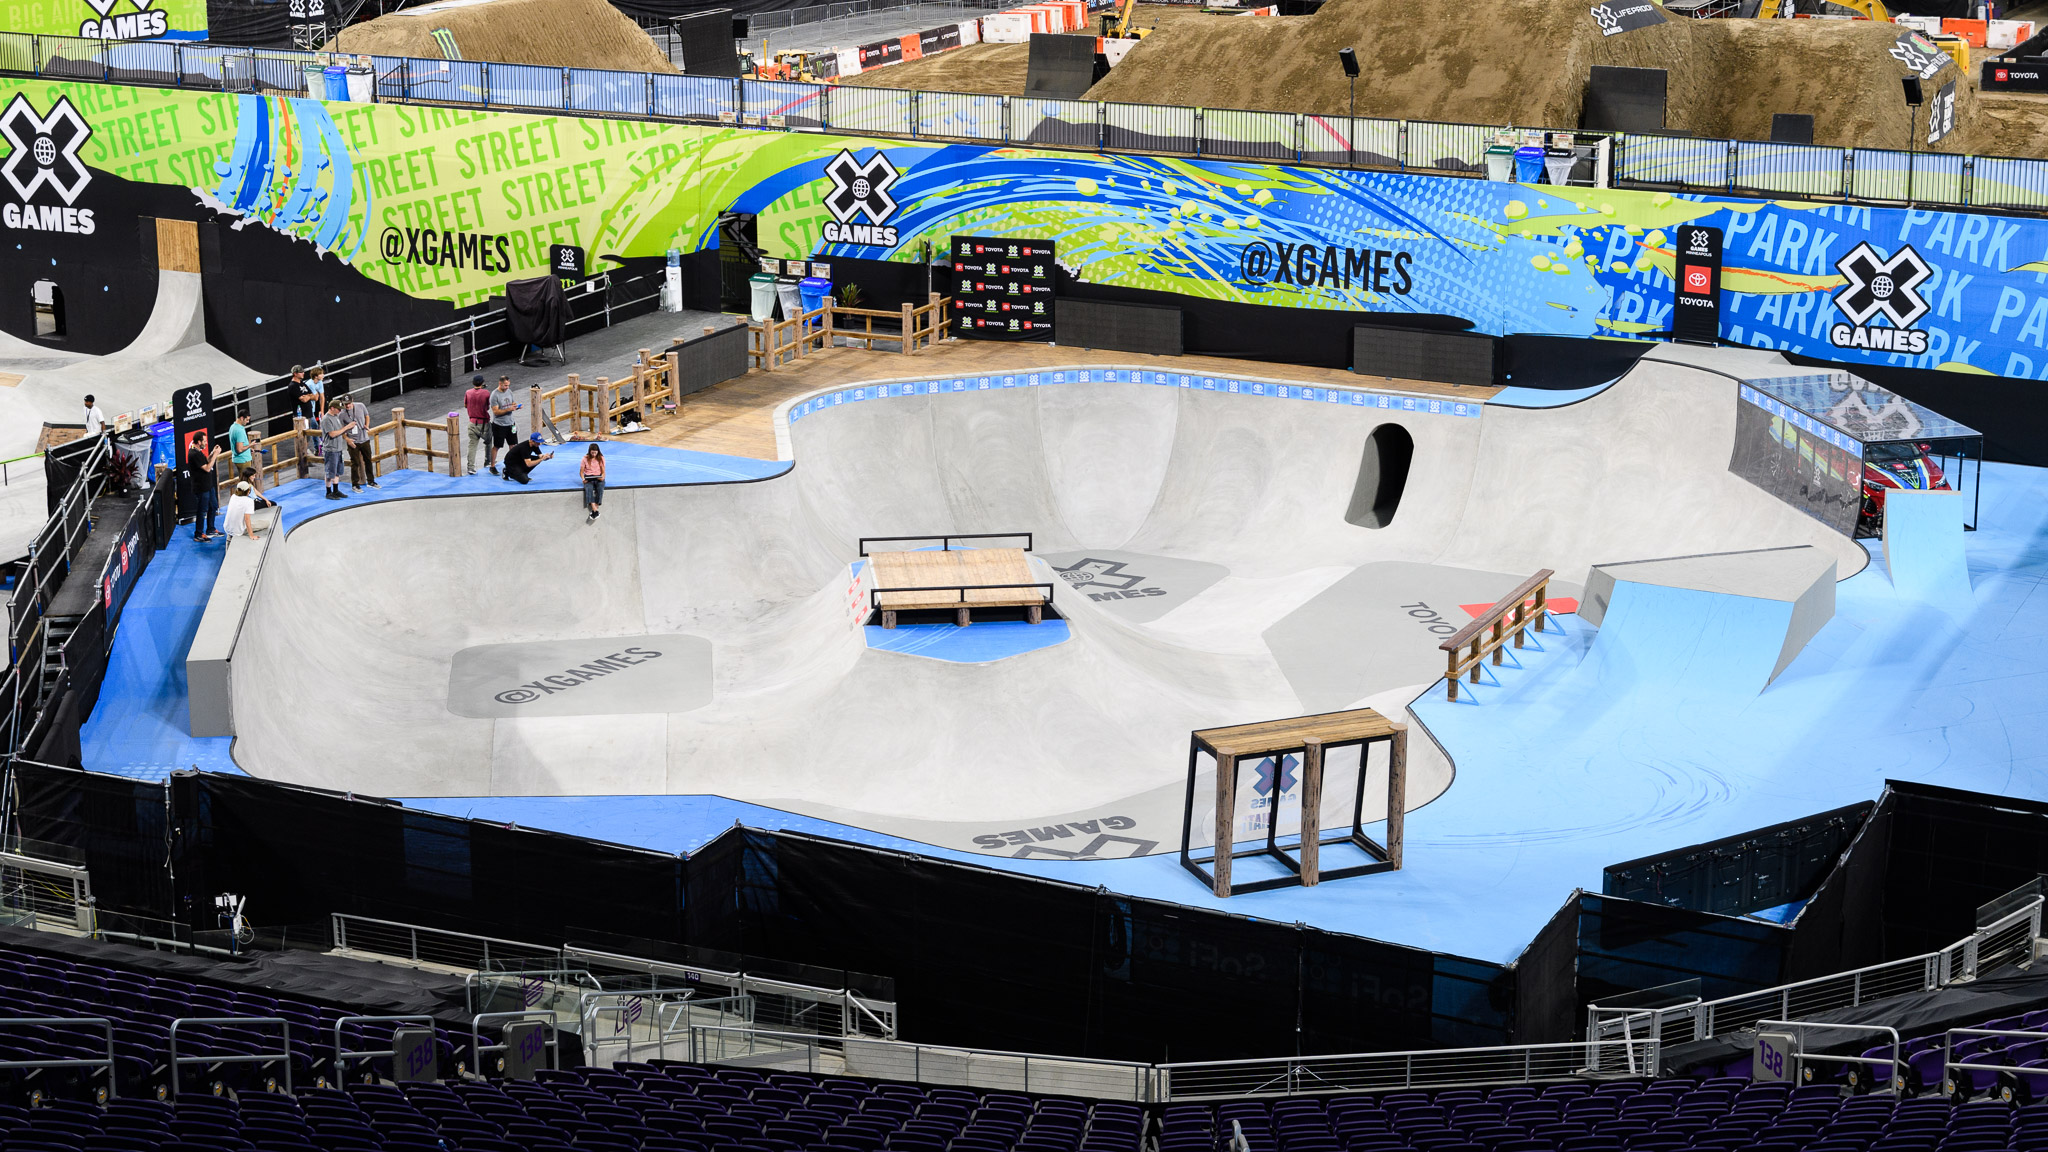 Welcome to X Games Minneapolis 2018. X Games Minneapolis gets underway on Thursday, July 19, but in advance of the competition, XGames.com takes an inside look at the courses and the build up to X Games.